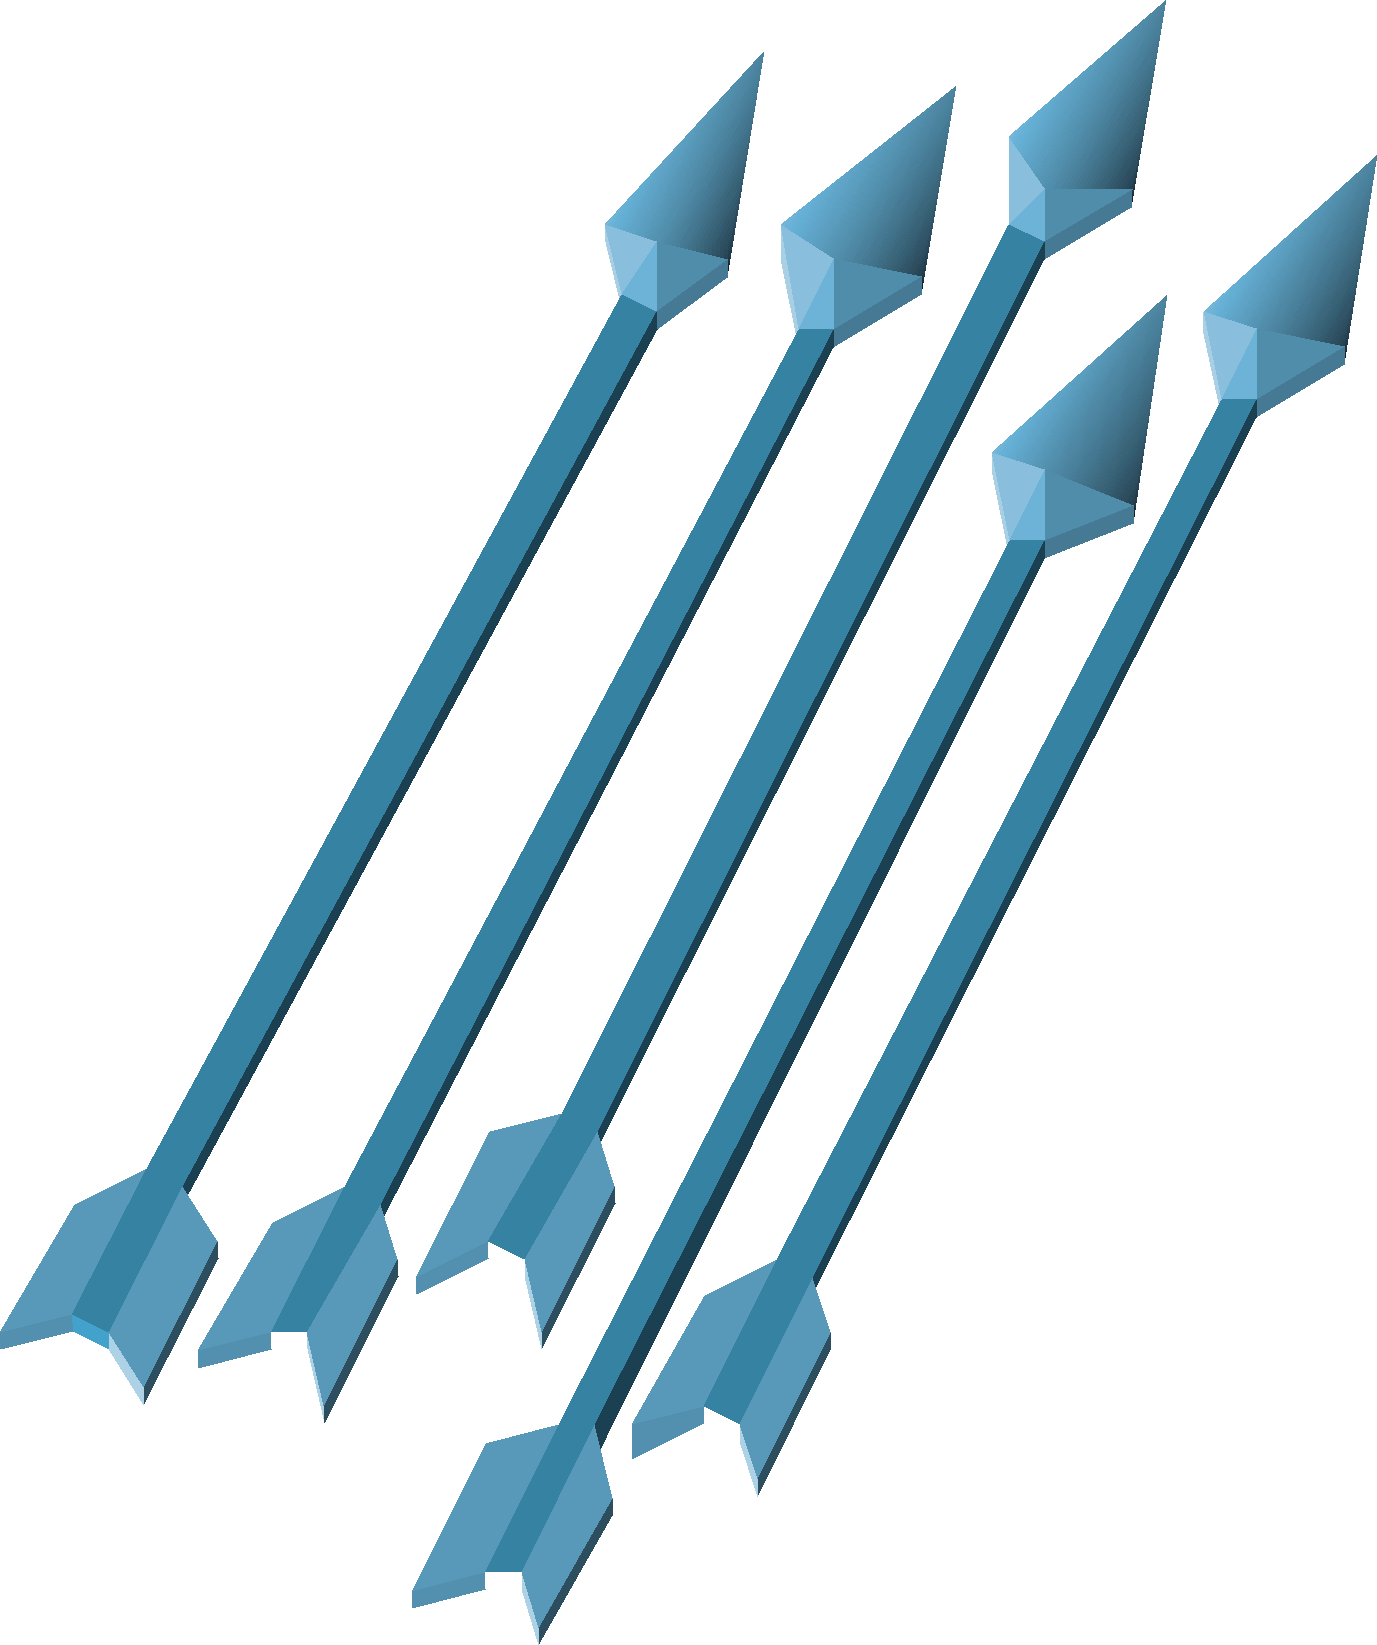 File:Ice arrows detail.png